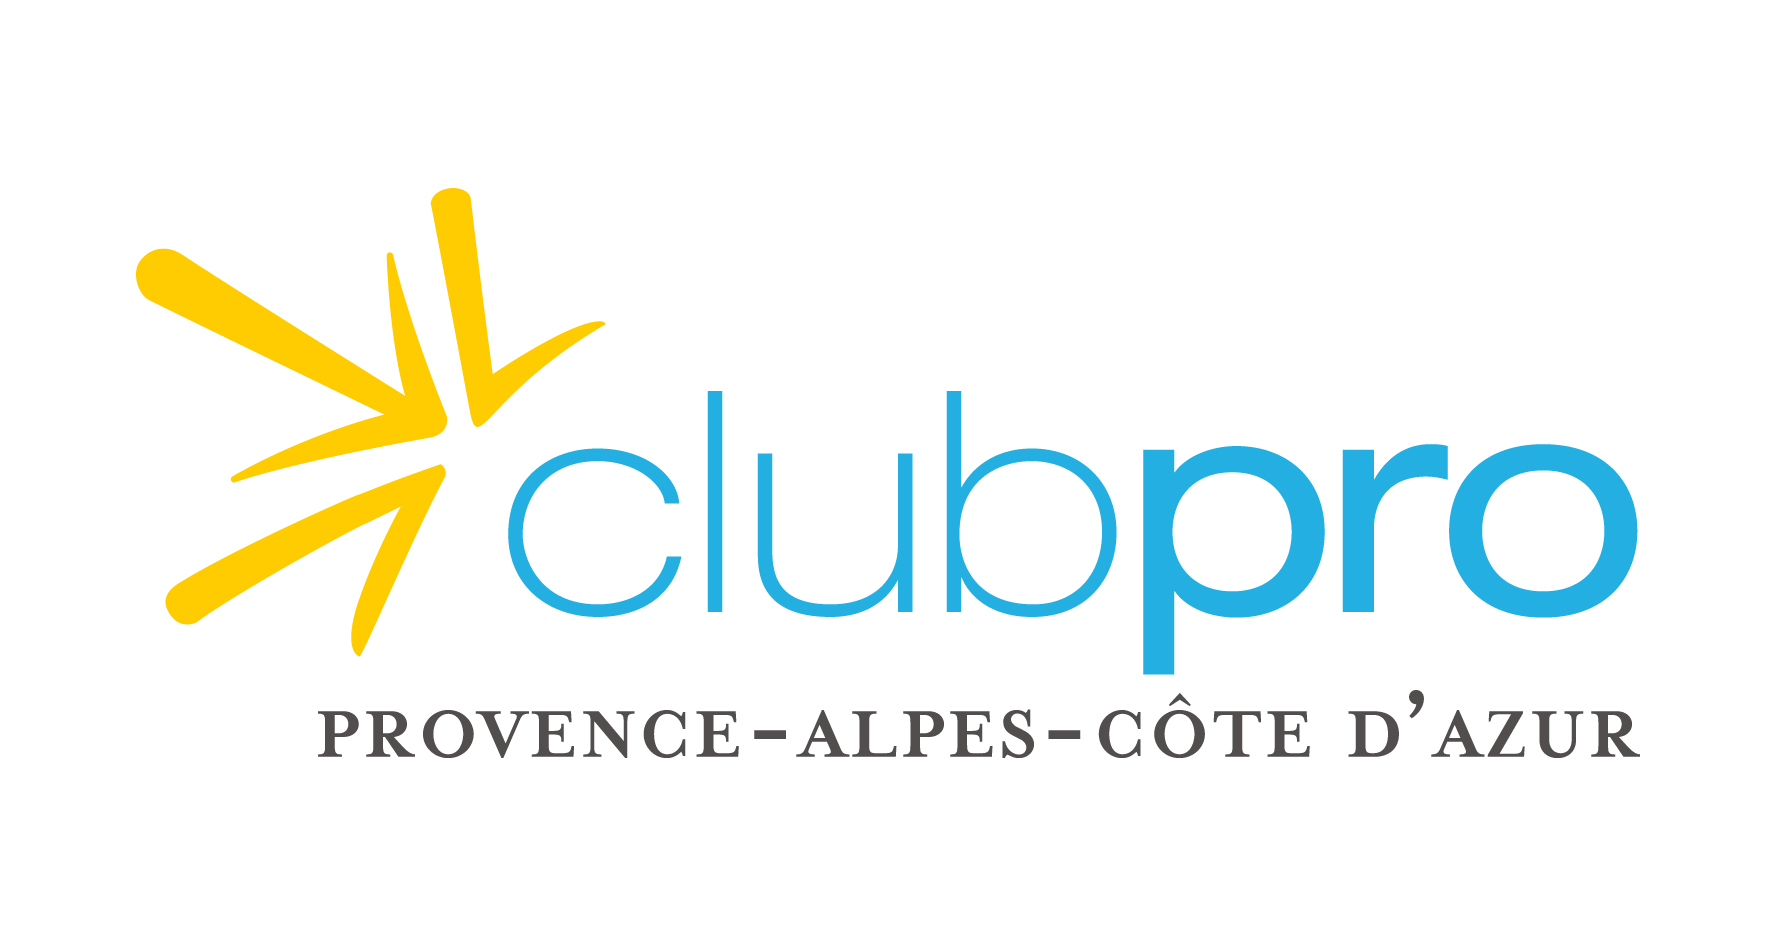 Memeber of the Provence Alpes Côte d'Azur Club Pro, bringing you the best in regional excellence in tourism